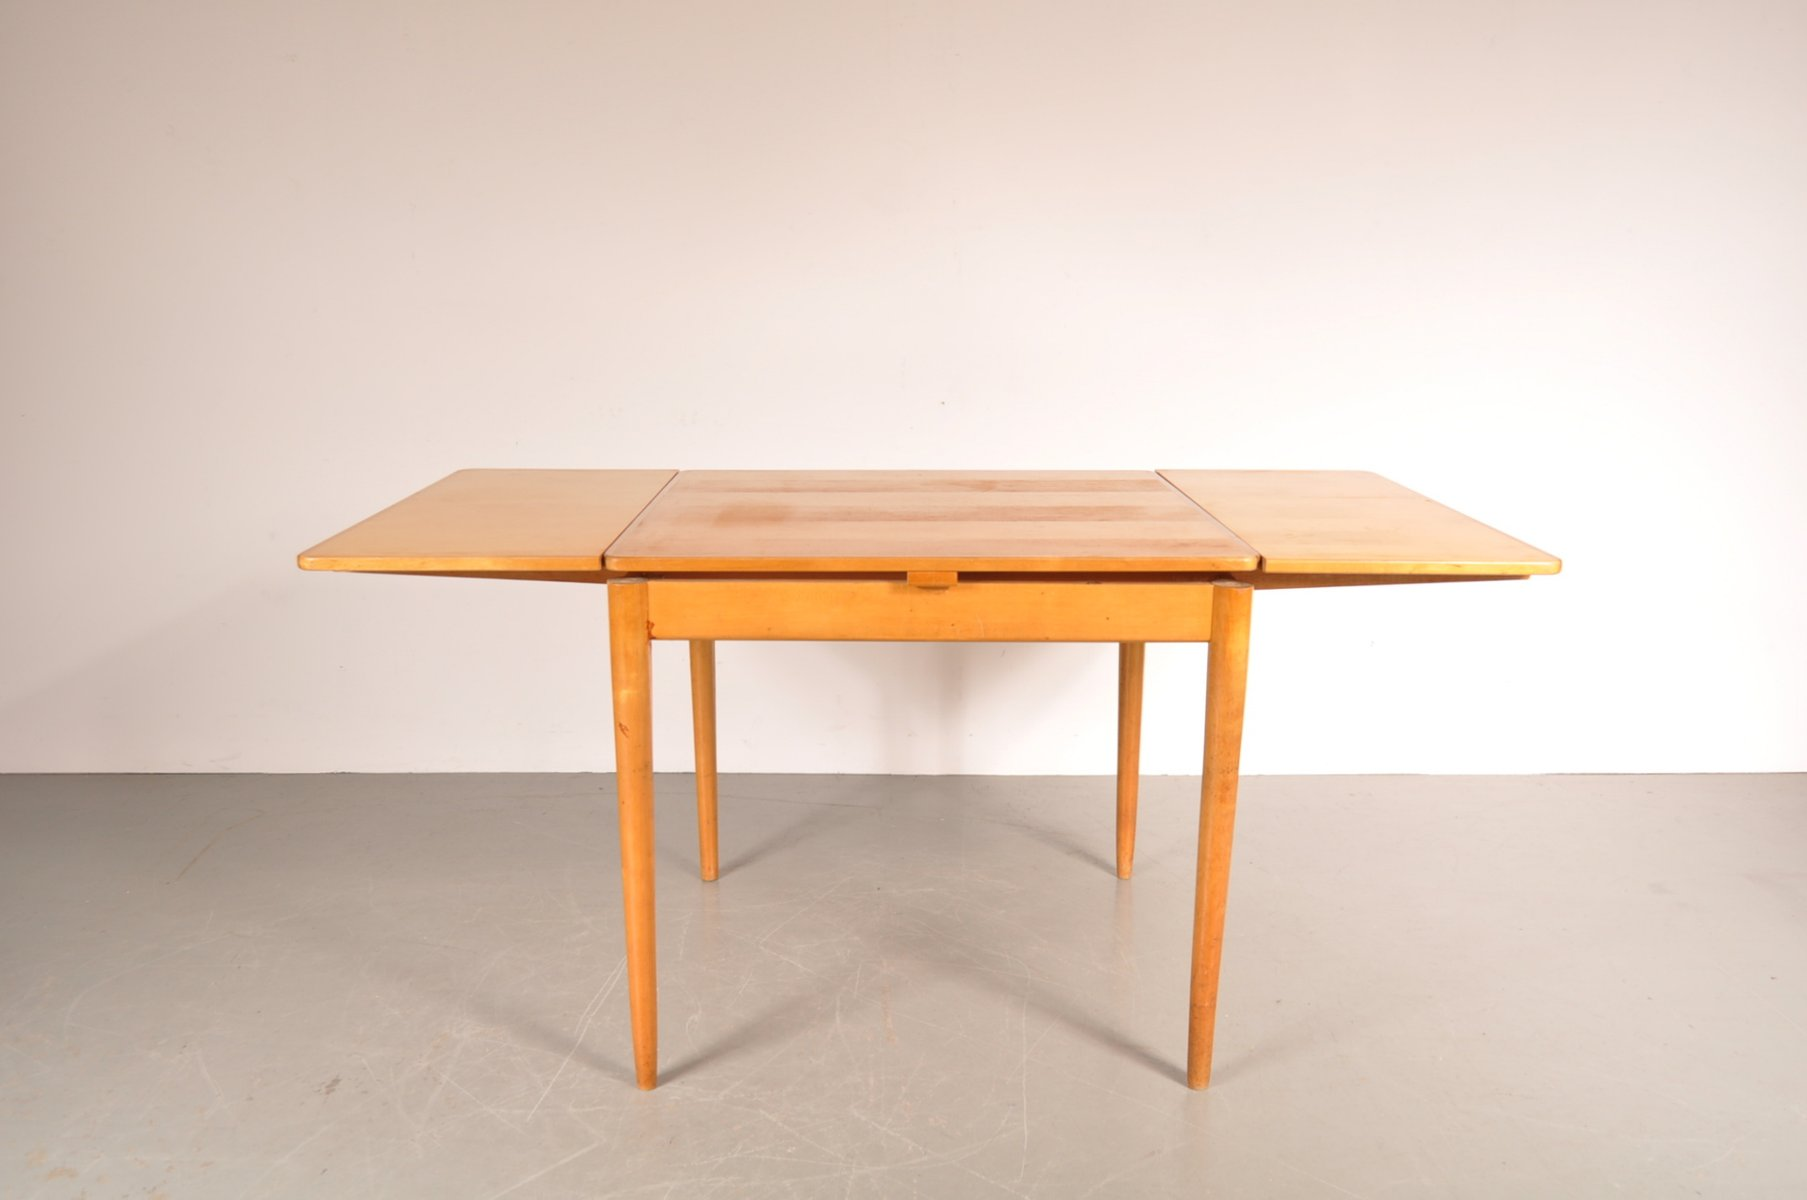 Table carree salle a manger design table salle manger for Table de salle a manger carree design